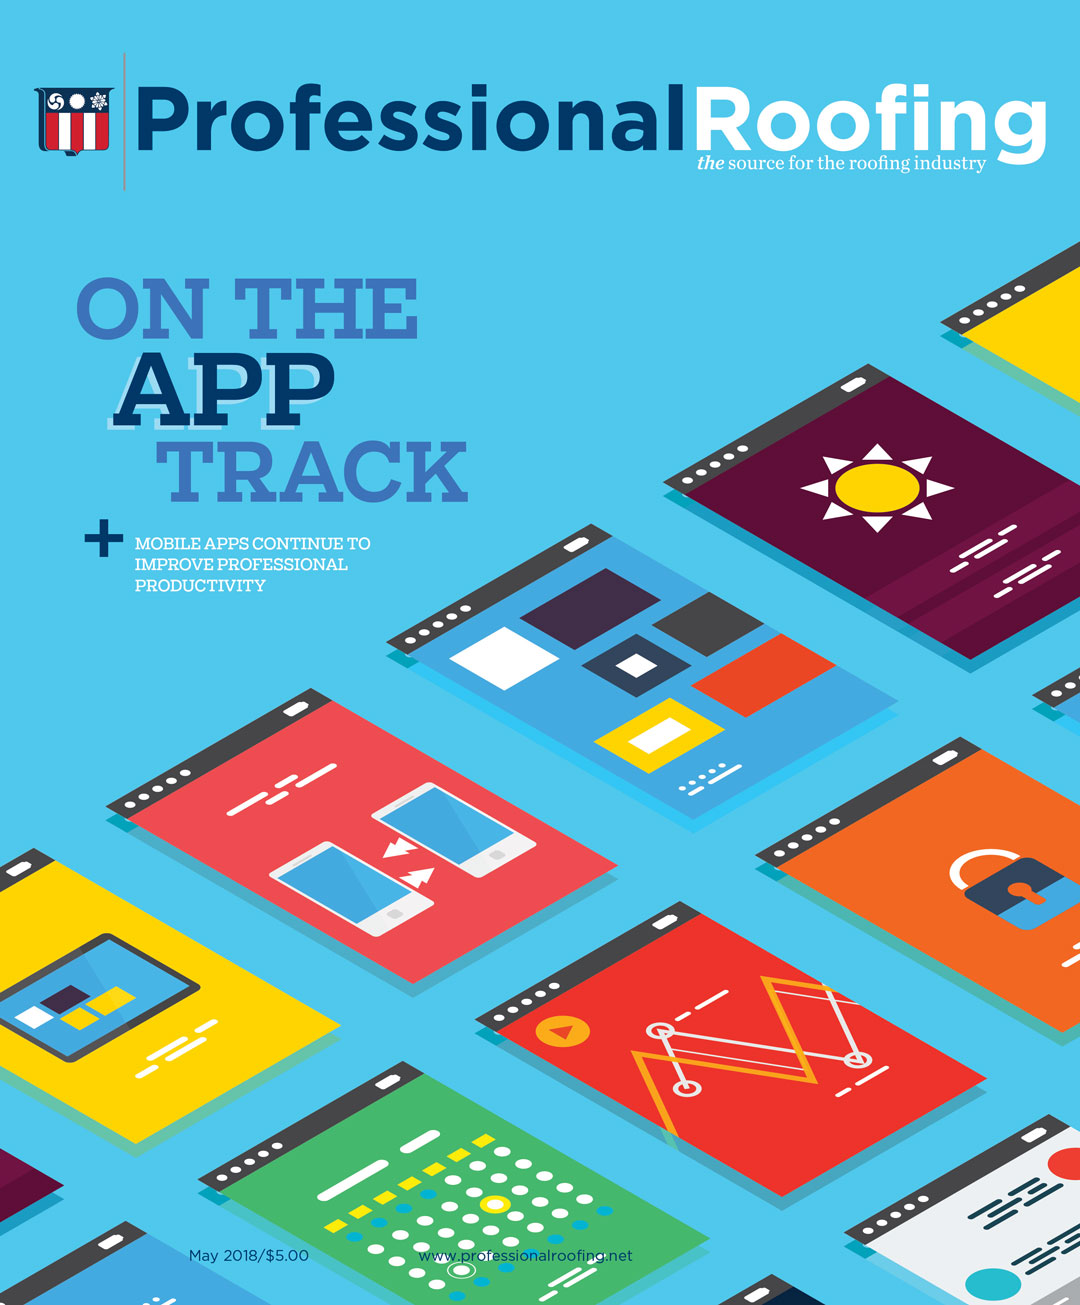 Professional Roofing Magazine 5/1/2018